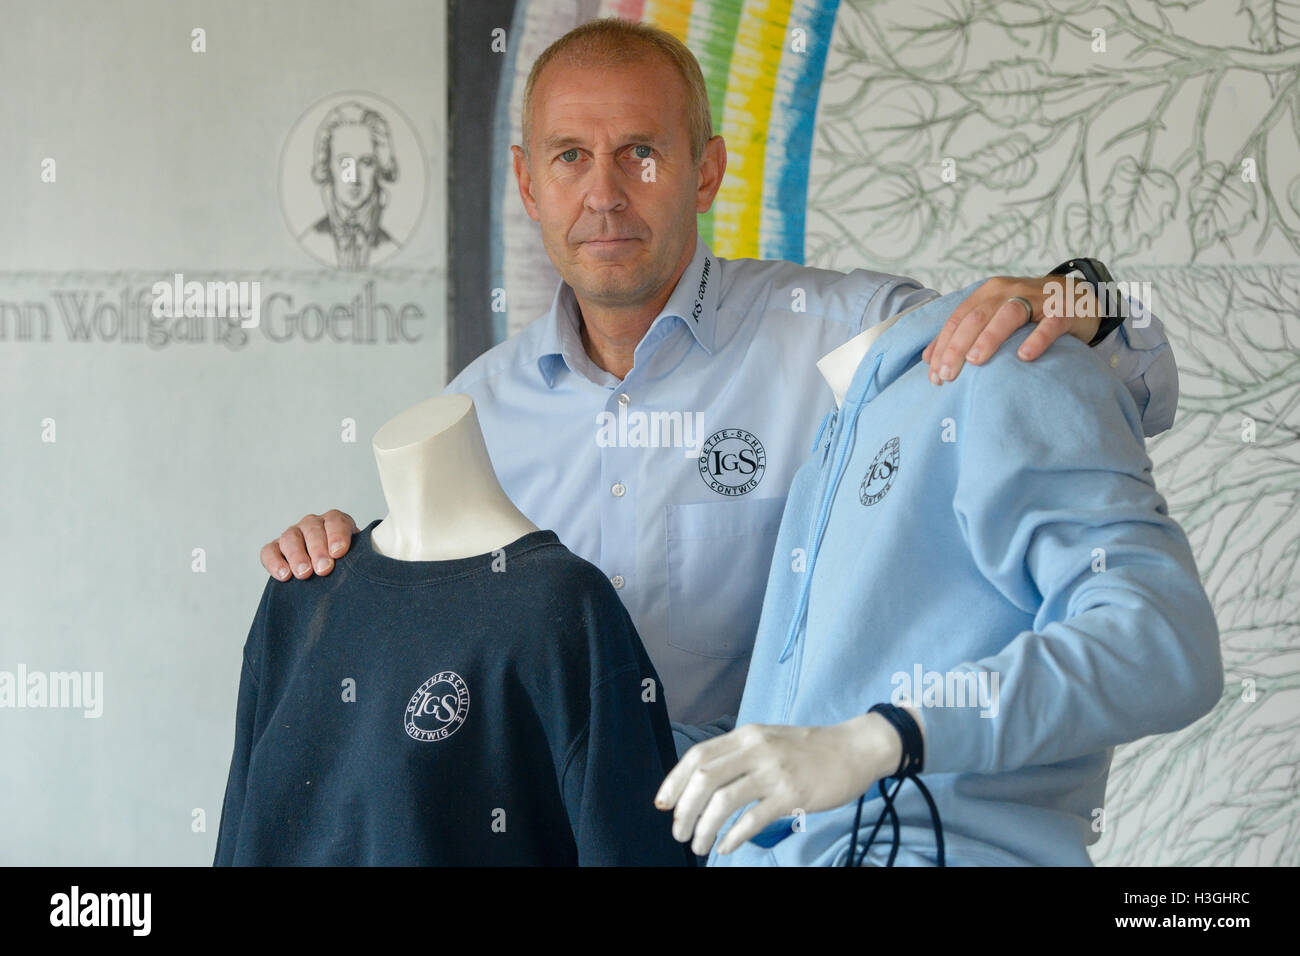 Contwig, Germany. 07th Oct, 2016. Headmaster Thomas Hoechst standing between two dummies dressed in clothes bearing Stock Photo